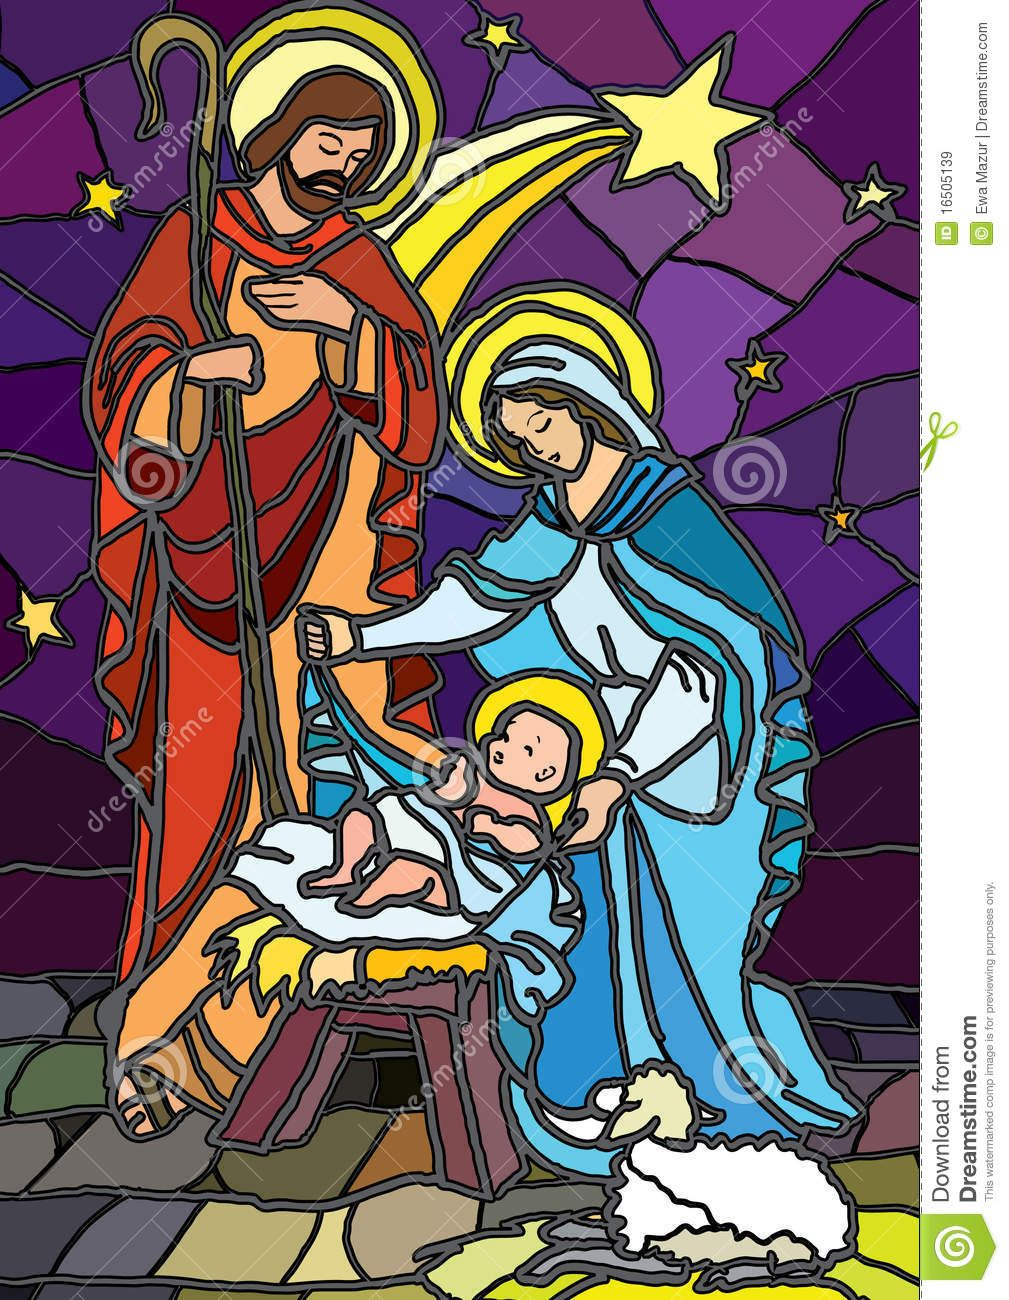 stained glass nativity - Bing images | Pesebres en repujado ...